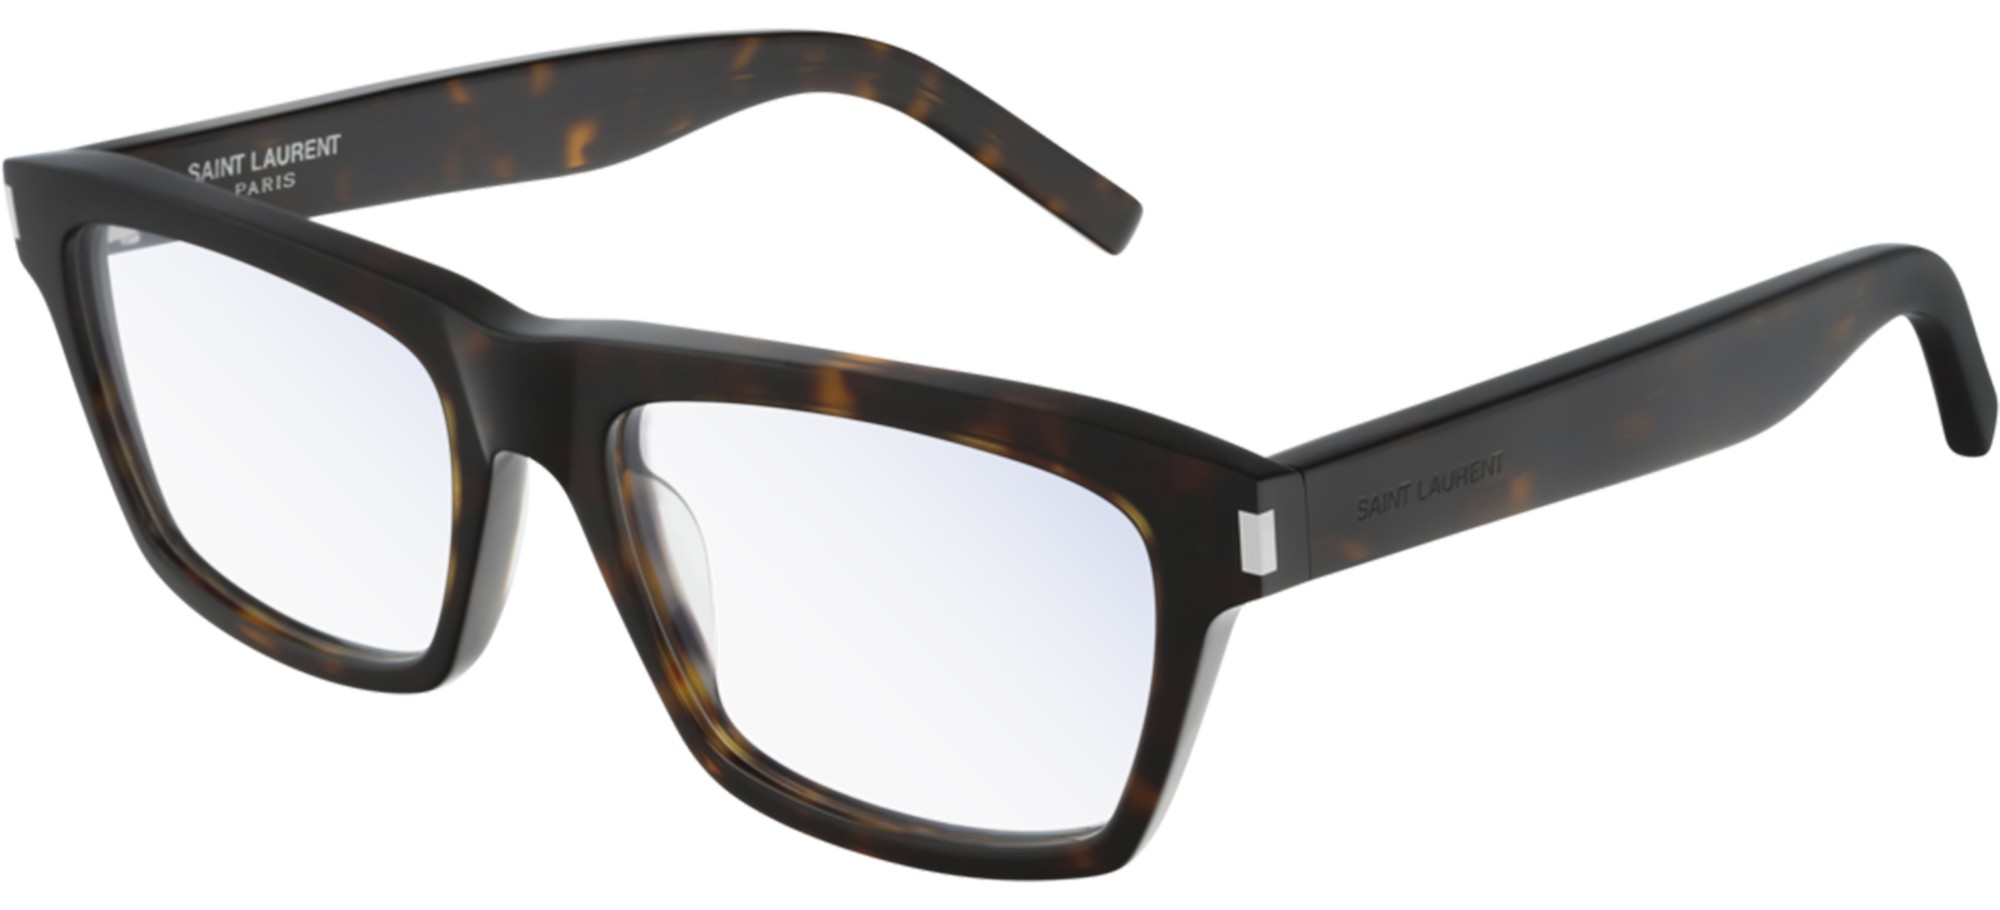 Saint Laurent eyeglasses SL 275